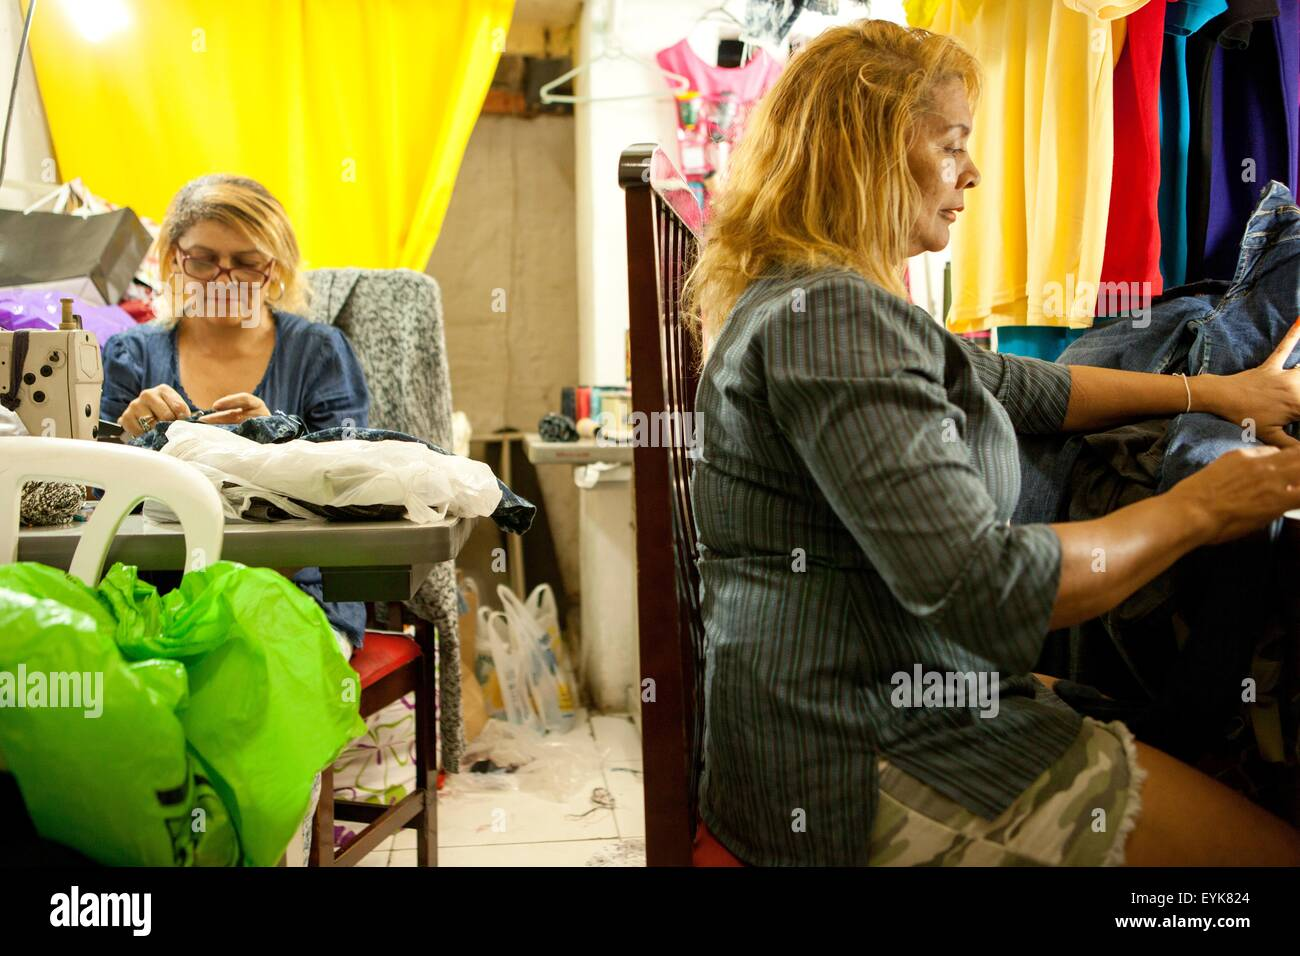 Two seamstresses working at sewing machines in workshop - Stock Image